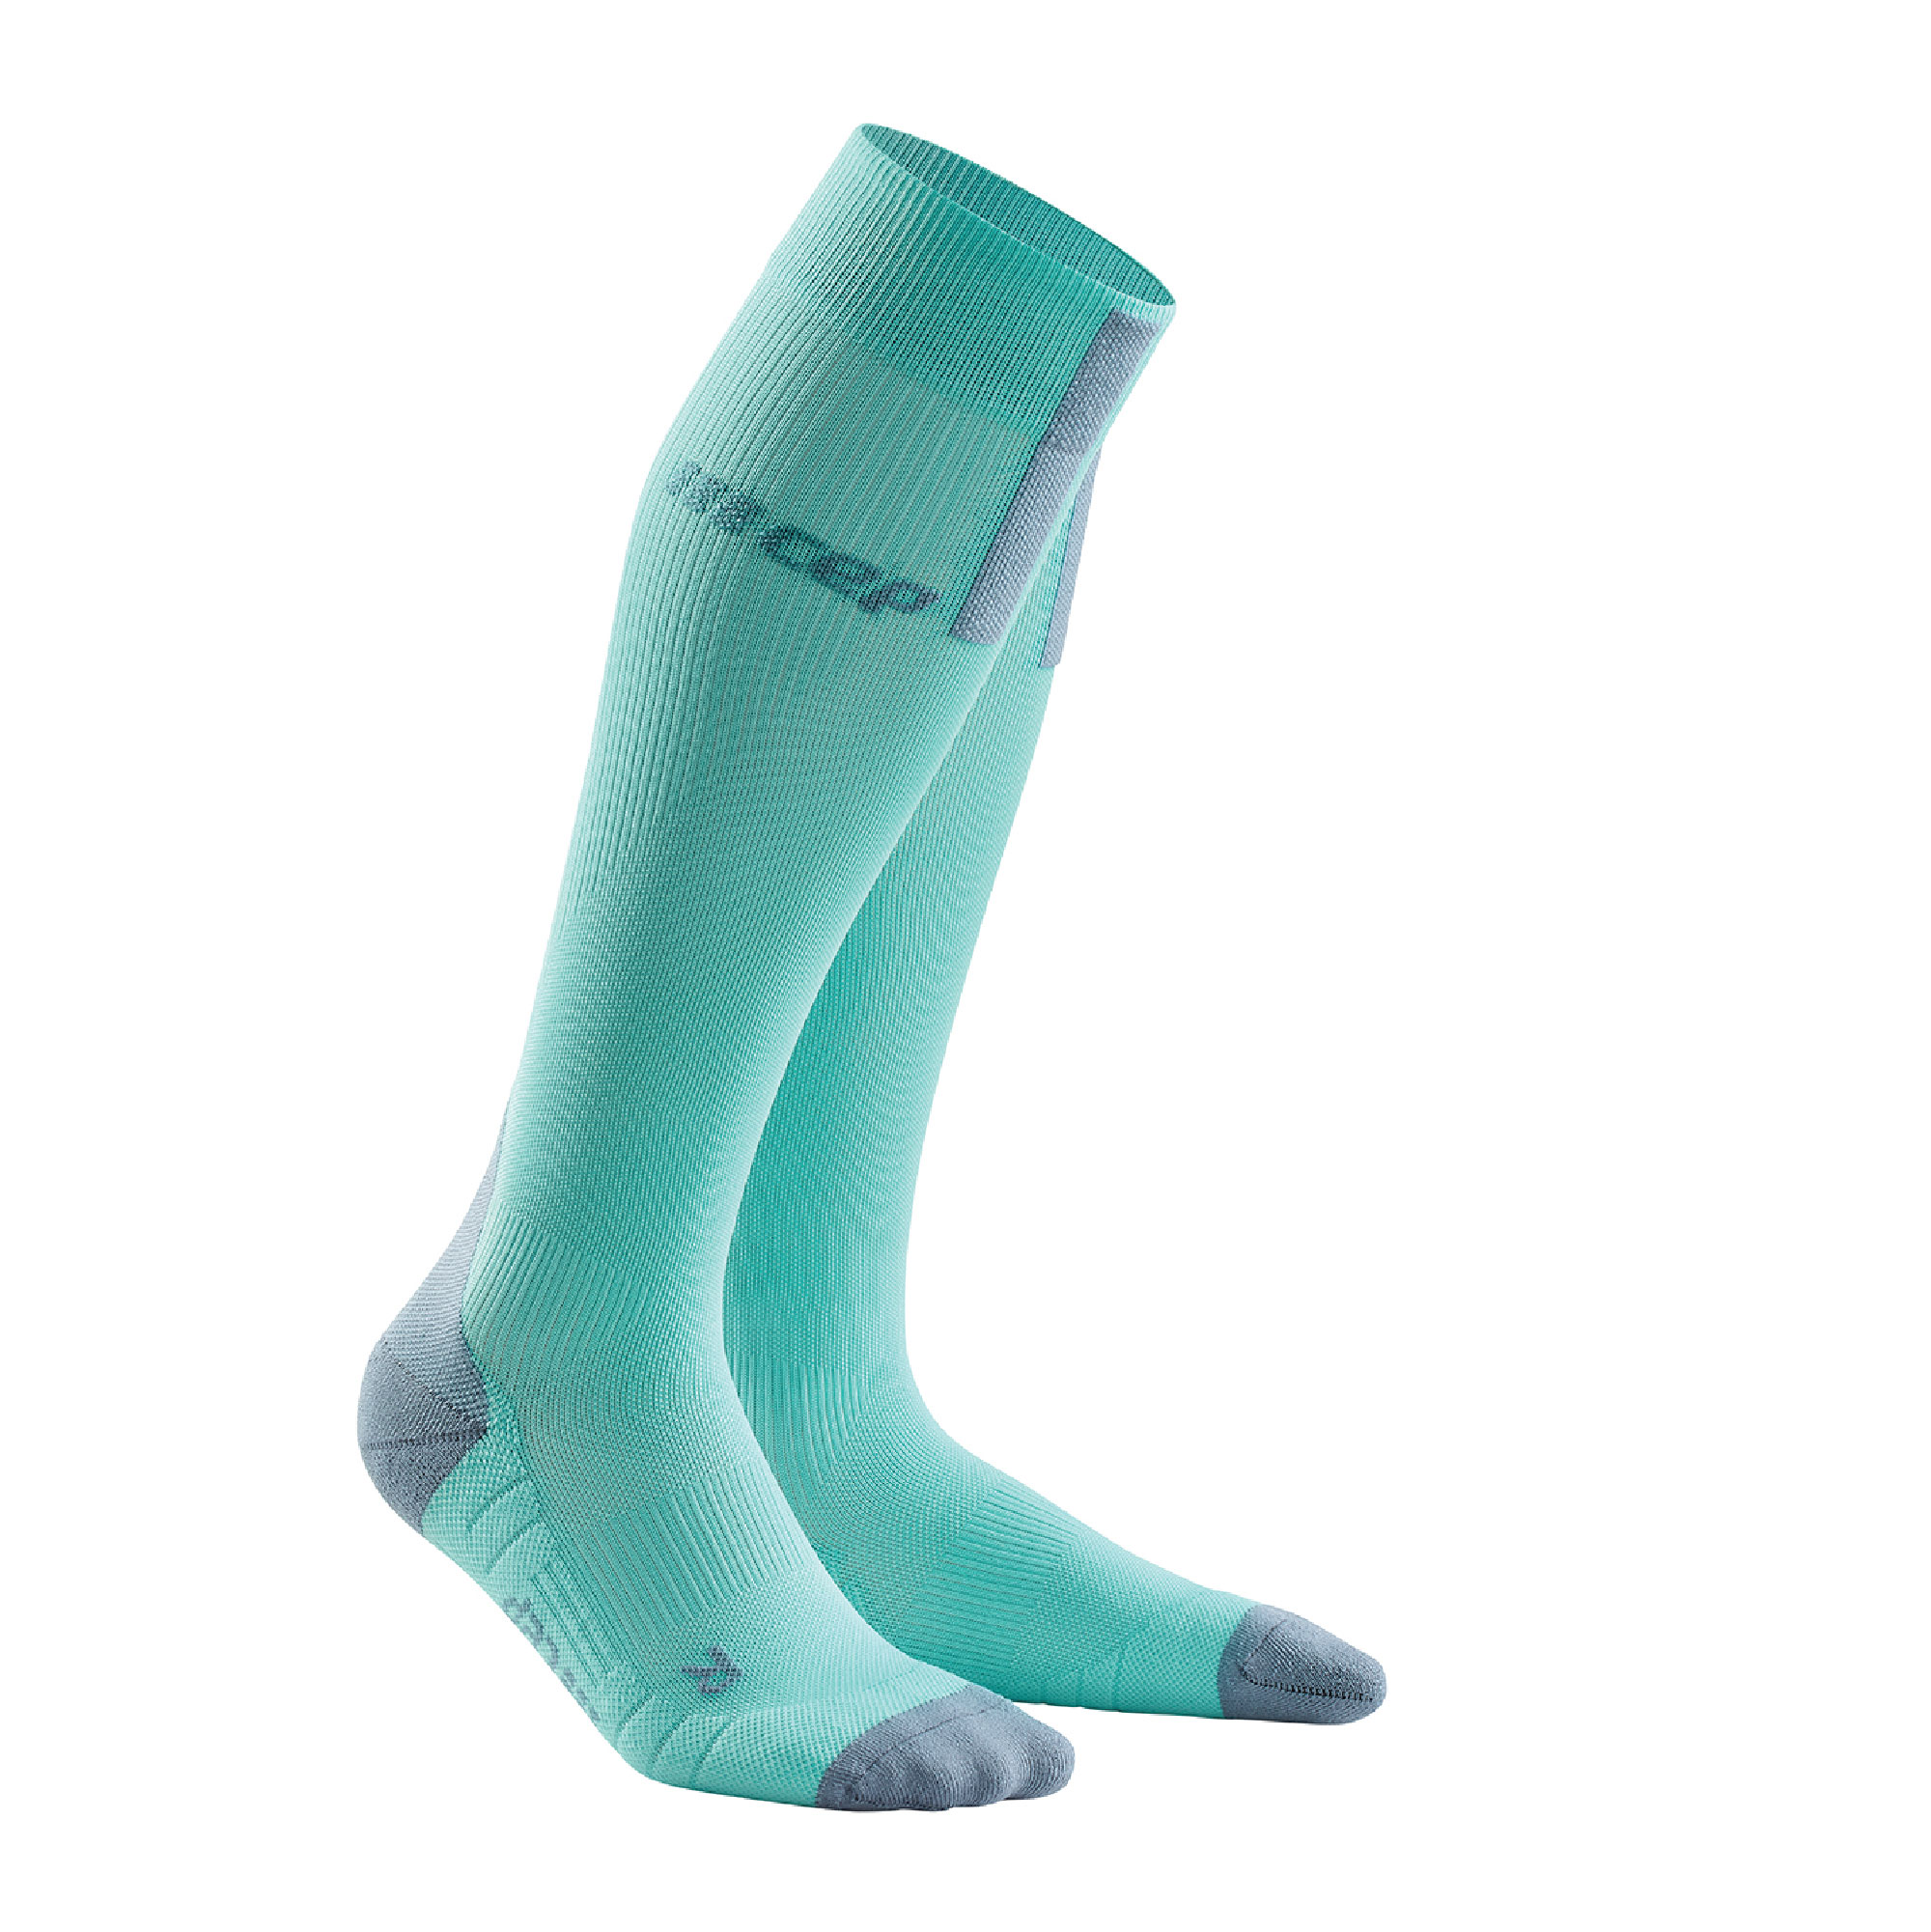 RUN SOCKS 3.0 | WOMEN